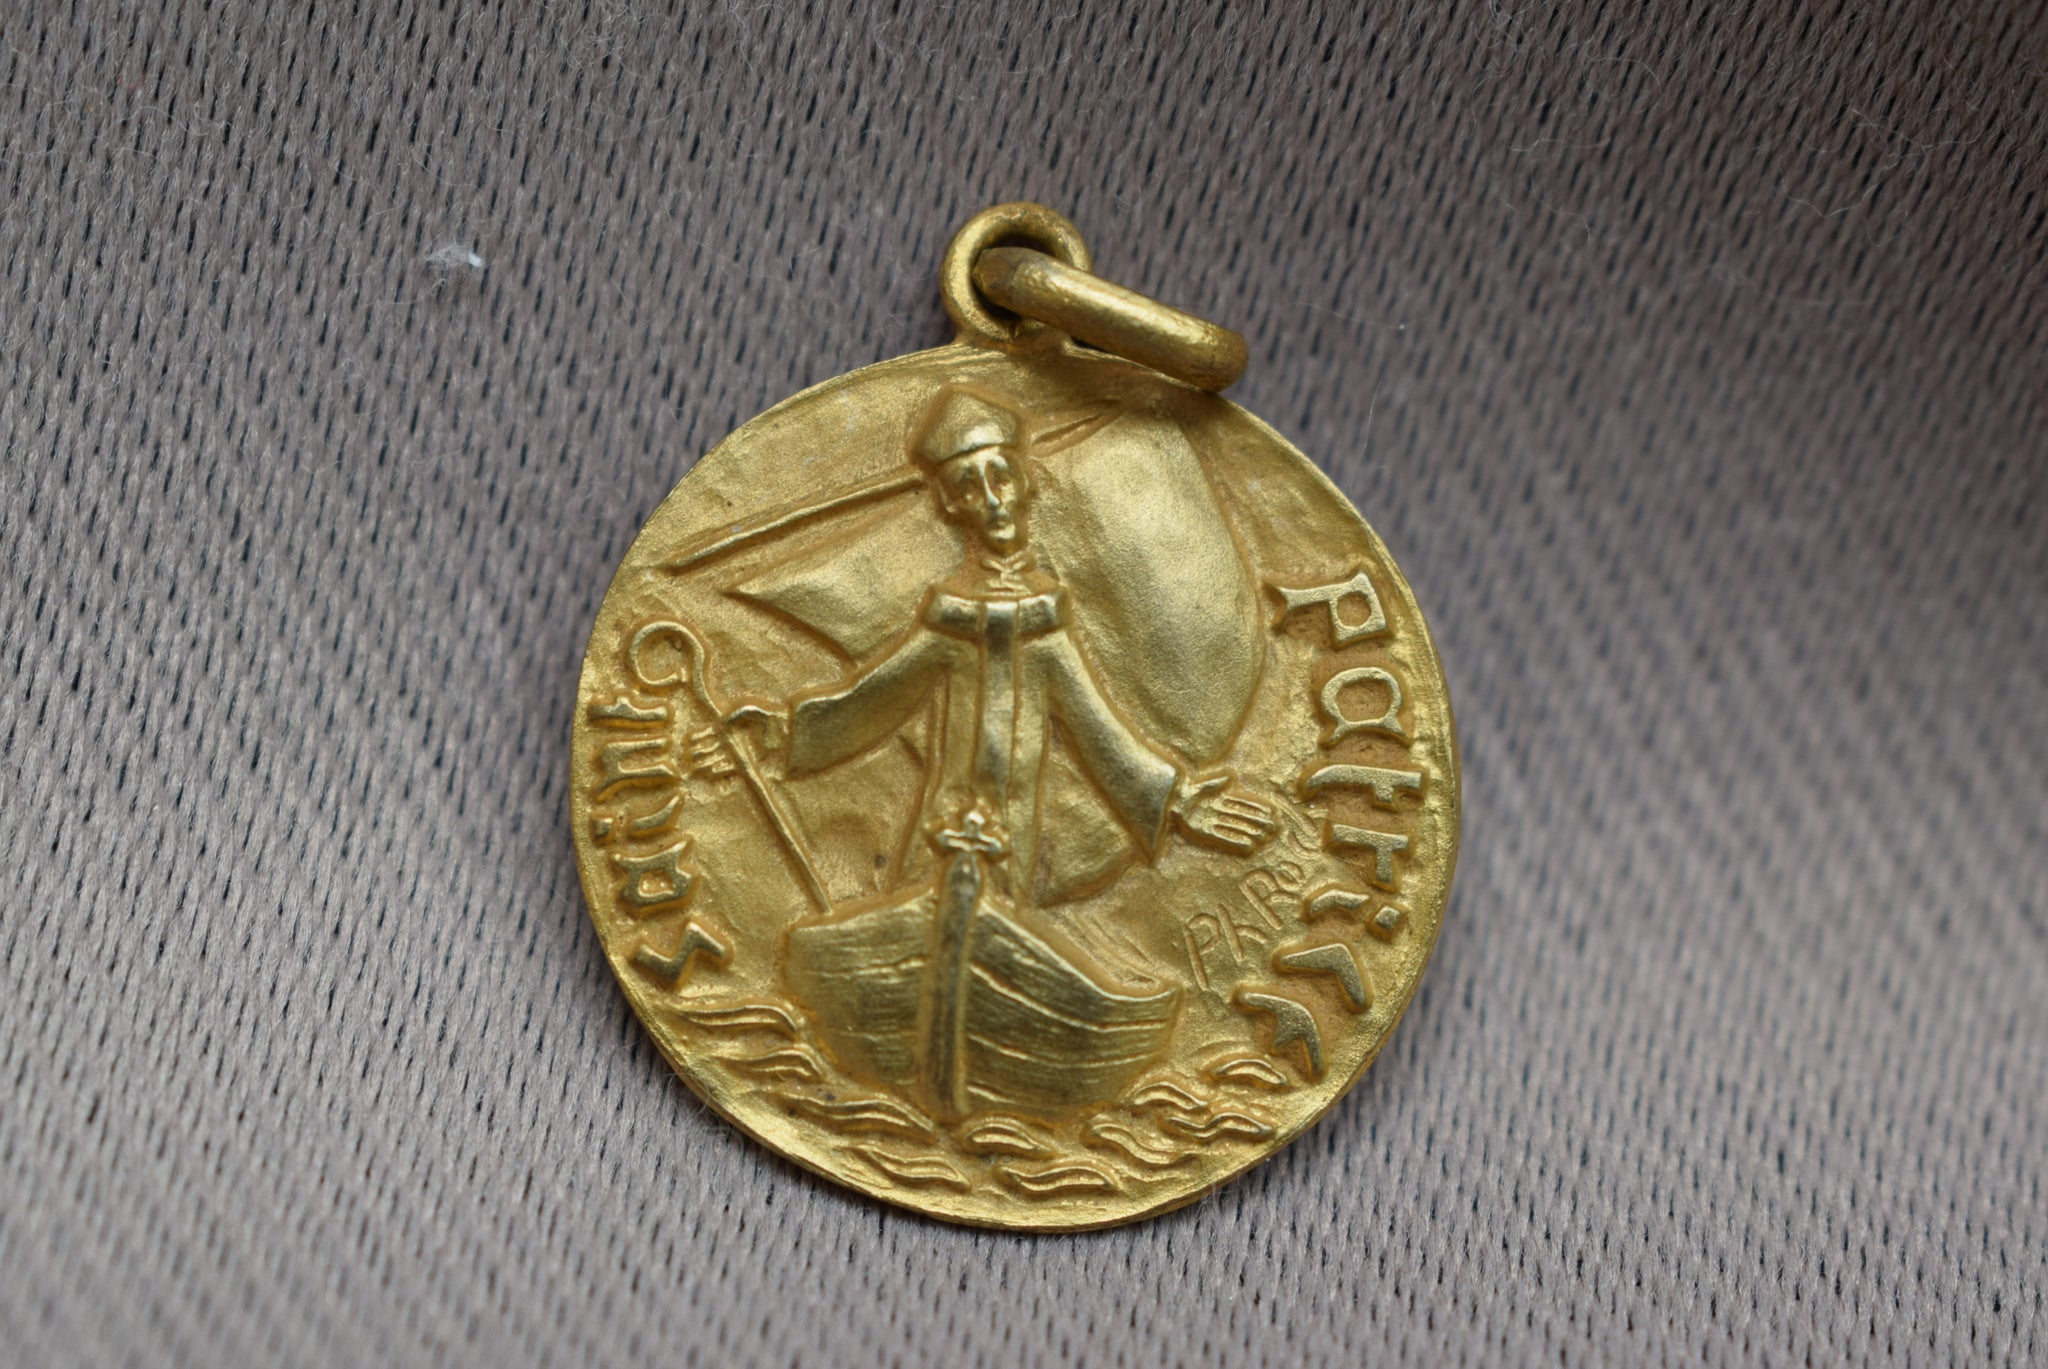 Saint patrick patron of ireland medal by ph roch charmantiques saint patrick medal french religious vintage gold medal pendant charm by philippe roch modernist aloadofball Images